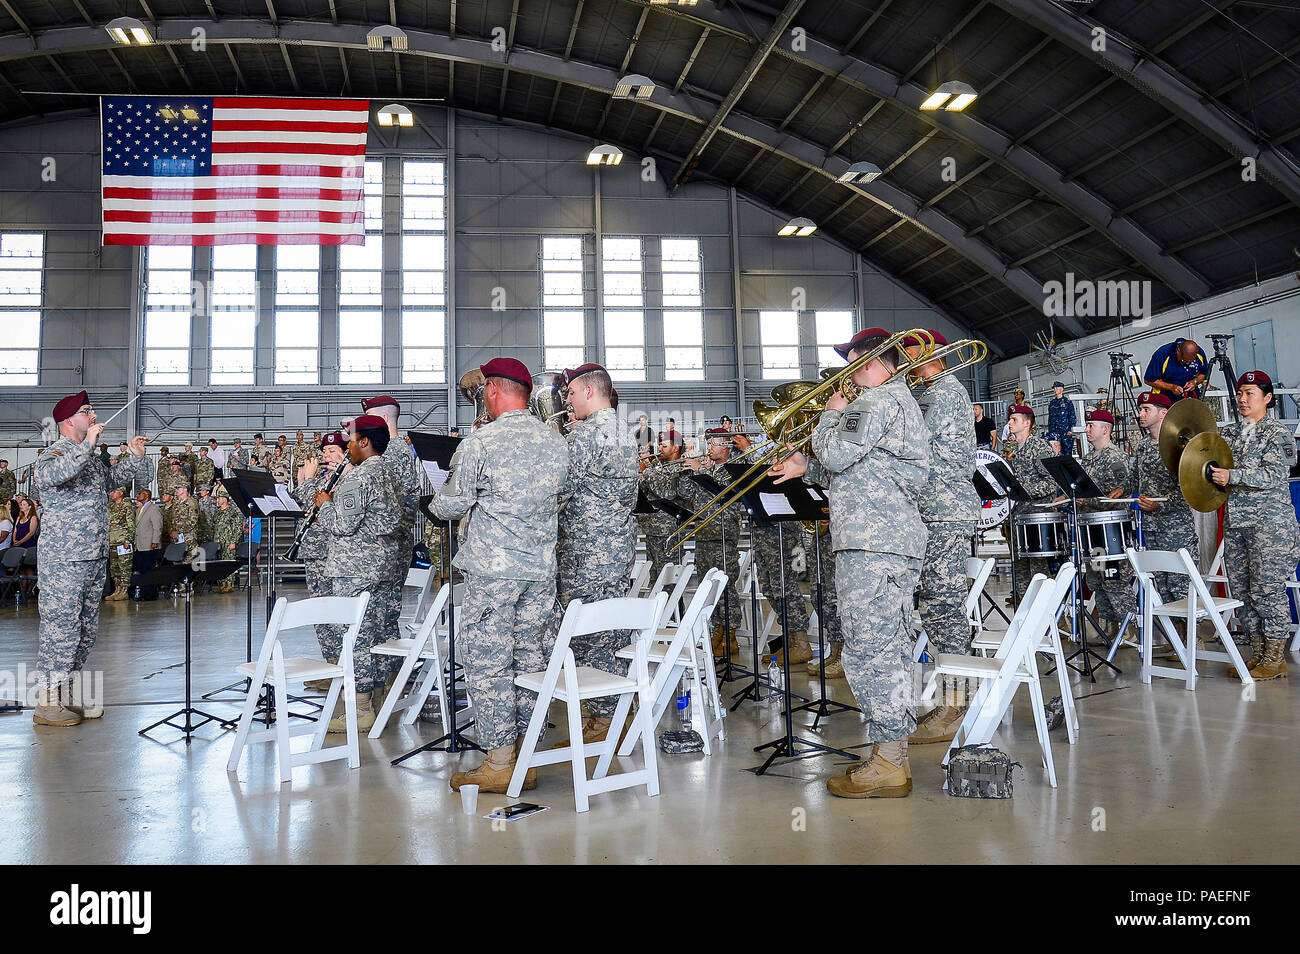 The 82nd Airborne Division Band perform the Armed Forces Medley at the U.S. Central Command change of command ceremony at MacDill Air Force Base, Fla., March 30, 2016.  Defense Secretary Ash Carter officiated the change of command ceremony, which attracted more than 1,000 attendees, including Joint Chiefs of Staff chairman U.S. Marine Gen. Joseph F. Dunford, Central Command's component commanders, community leaders and senior coalition representatives. (U.S. Air Force photo by Senior Airman Ned T. Johnston) Stock Photo